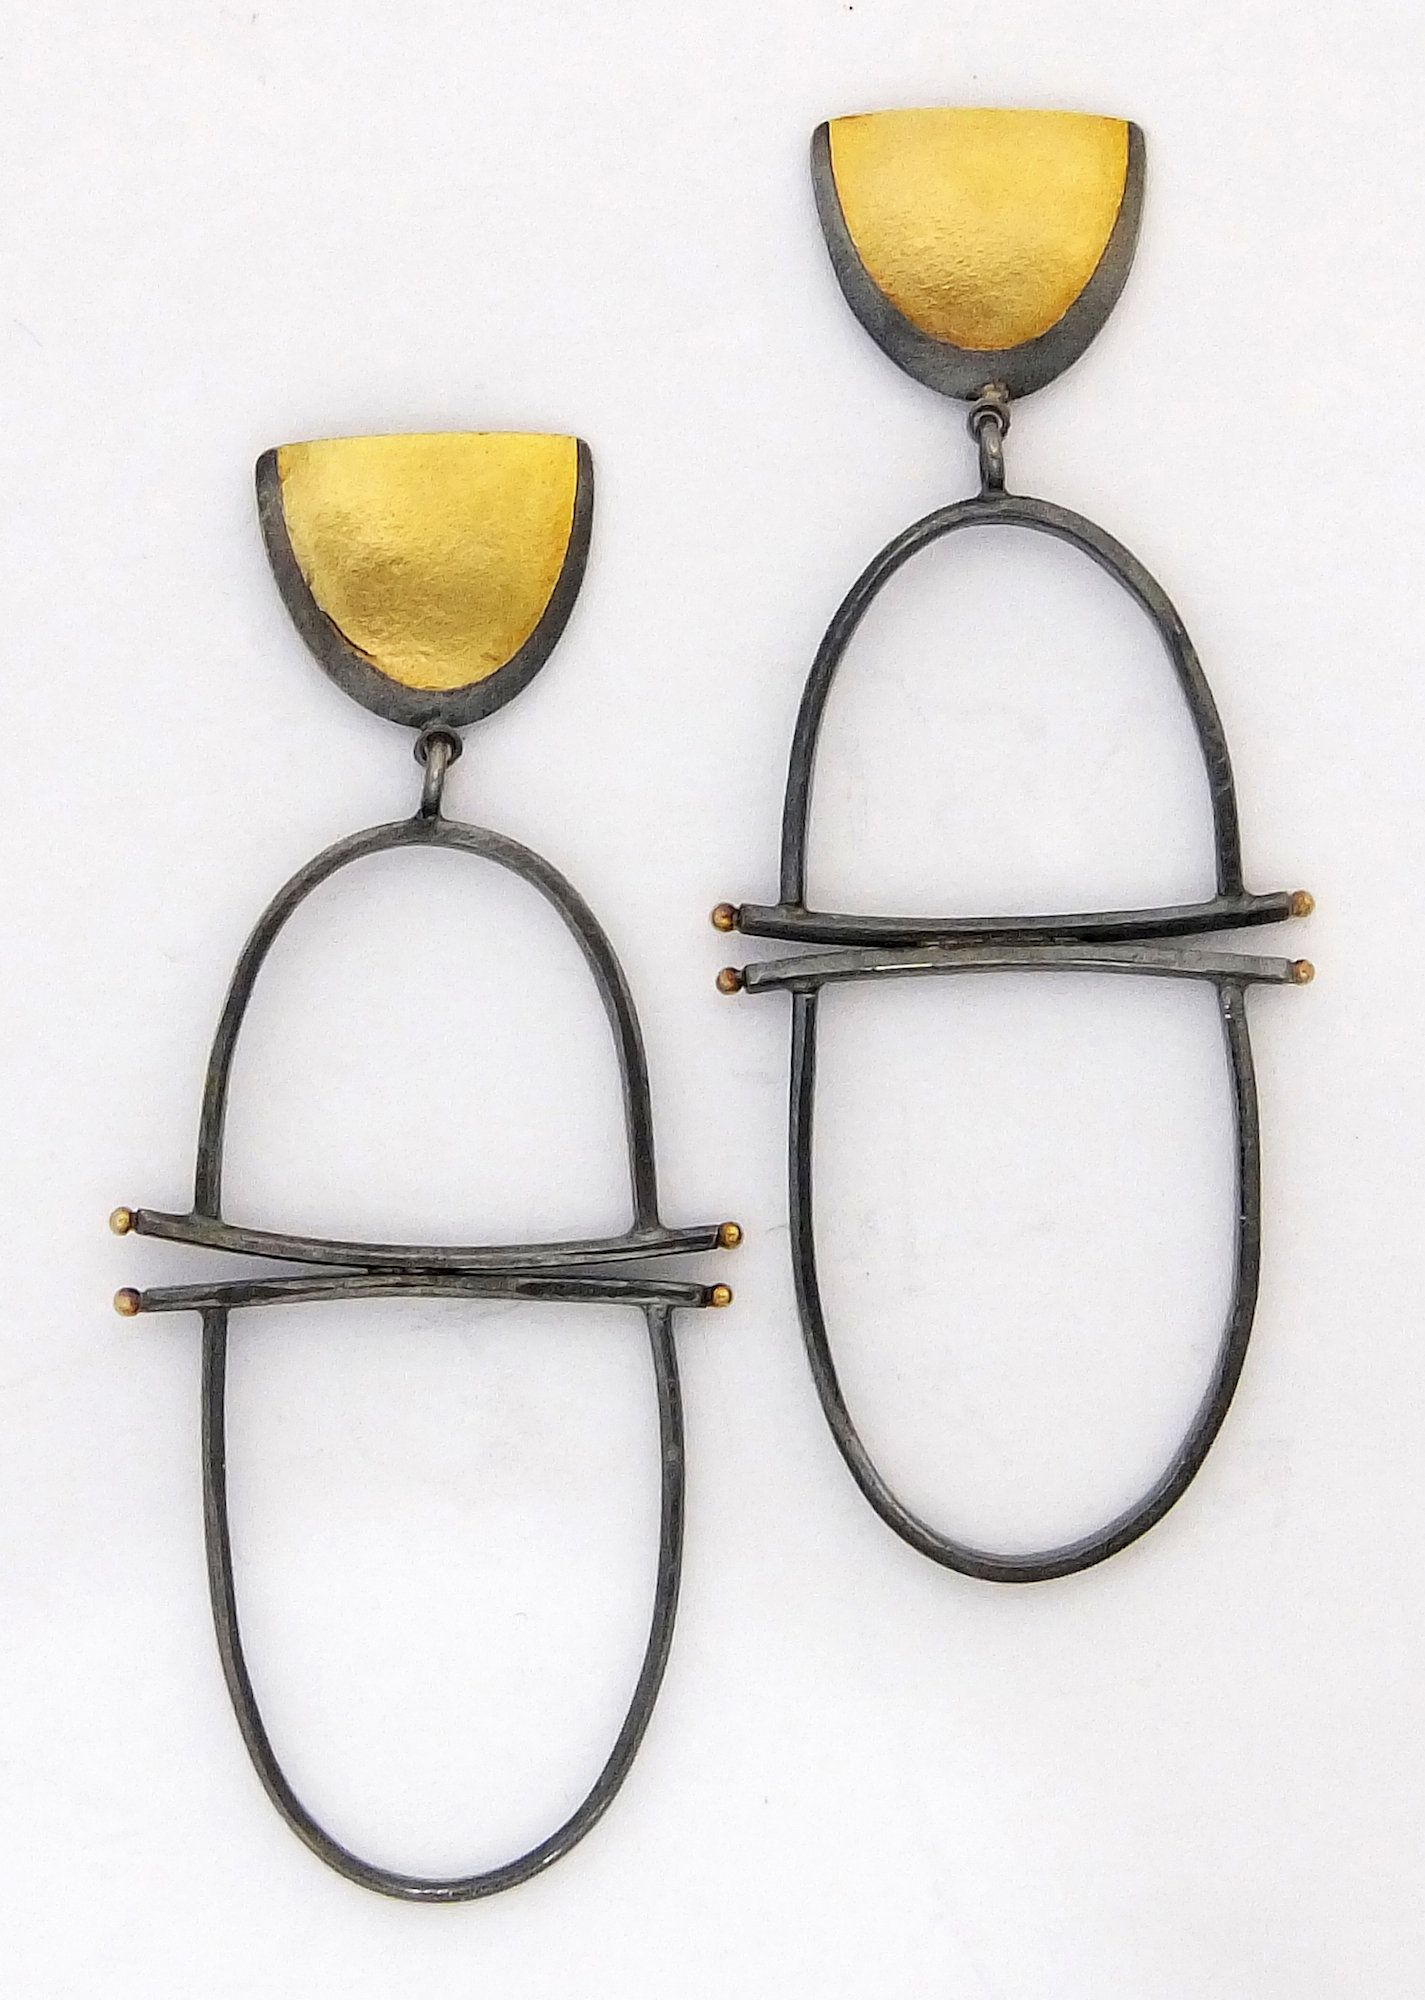 Artful Home Girona Earrings Sydney Lynch Gold Silver Earrings Artful